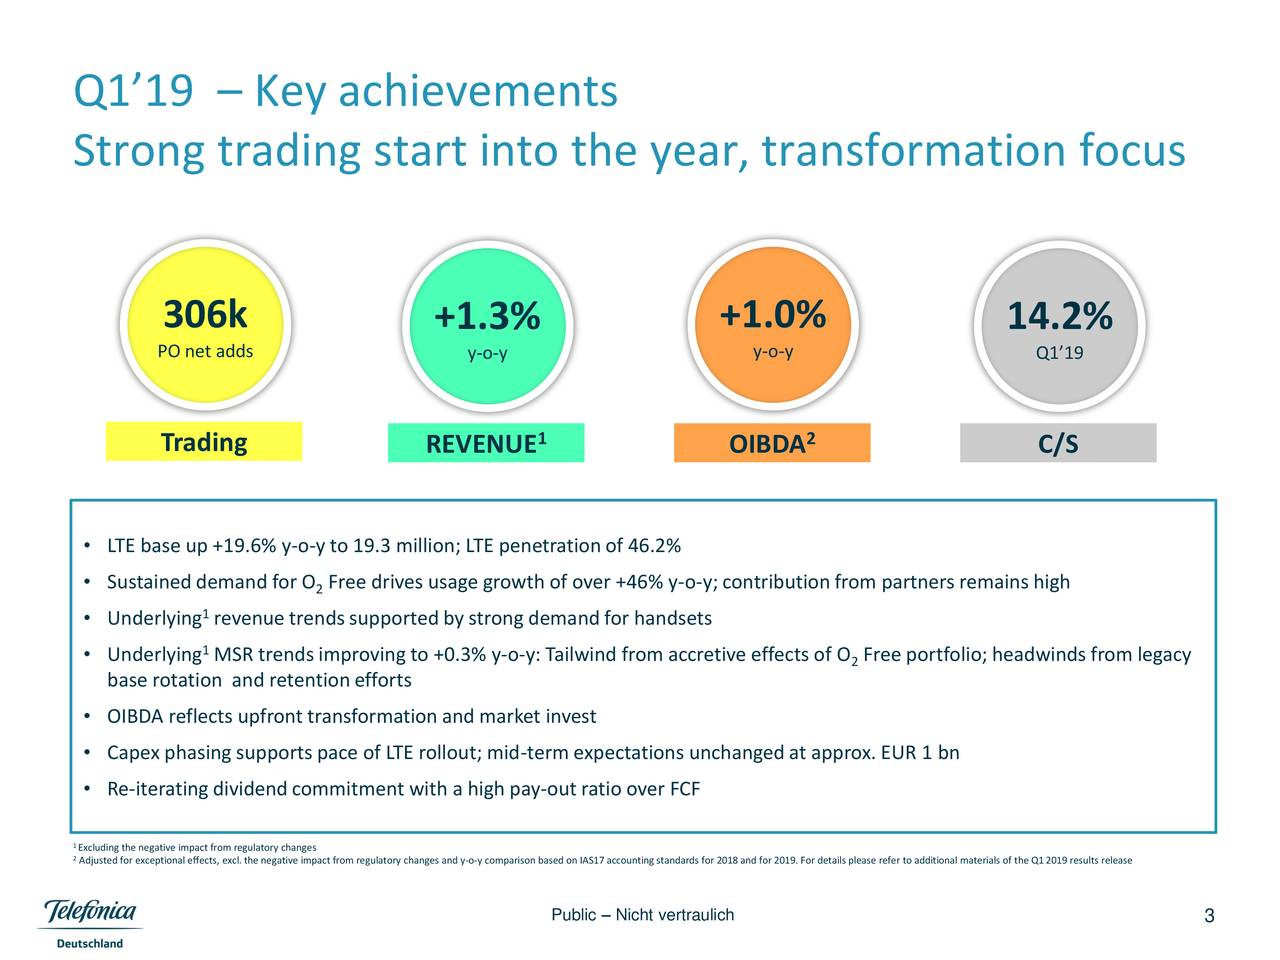 Strong trading start into the year, transformation focus 306k +1.3% +1.0% 14.2% PO net adds y-o-y y-o-y Q1'19 Trading REVENUE 1 OIBDA 2 C/S • LTE base up +19.6% y-o-y to 19.3 million; LTE penetrationof 46.2% • Sustaineddemand for 2 Free drives usage growth of over +46% y-o-y; contributionfrom partners remains high 1 • Underlying revenue trendssupportedby strong demand for handsets • Underlying MSR trends improving to +0.3% y-o-y: Tailwind from accretive2effects of O Free portfolio; headwinds from legacy base rotation and retentionefforts • OIBDA reflects upfront transformation and market invest • Capex phasing supports pace of LTE rollout; mid-term expectations unchanged at approx. EUR 1 bn • Re-iteratingdividendcommitment with a high pay-out ratio over FCF 1Excluding the negative impact from regulatory changes 2Adjusted for exceptional effects, excl. the negative impact from regulatory changes and y-o-y comparison based on IAS17 accounting standards for 2018 and for 2019. For details please refer to additional materials of the Q12019 results release Public – Nicht vertraulich 3